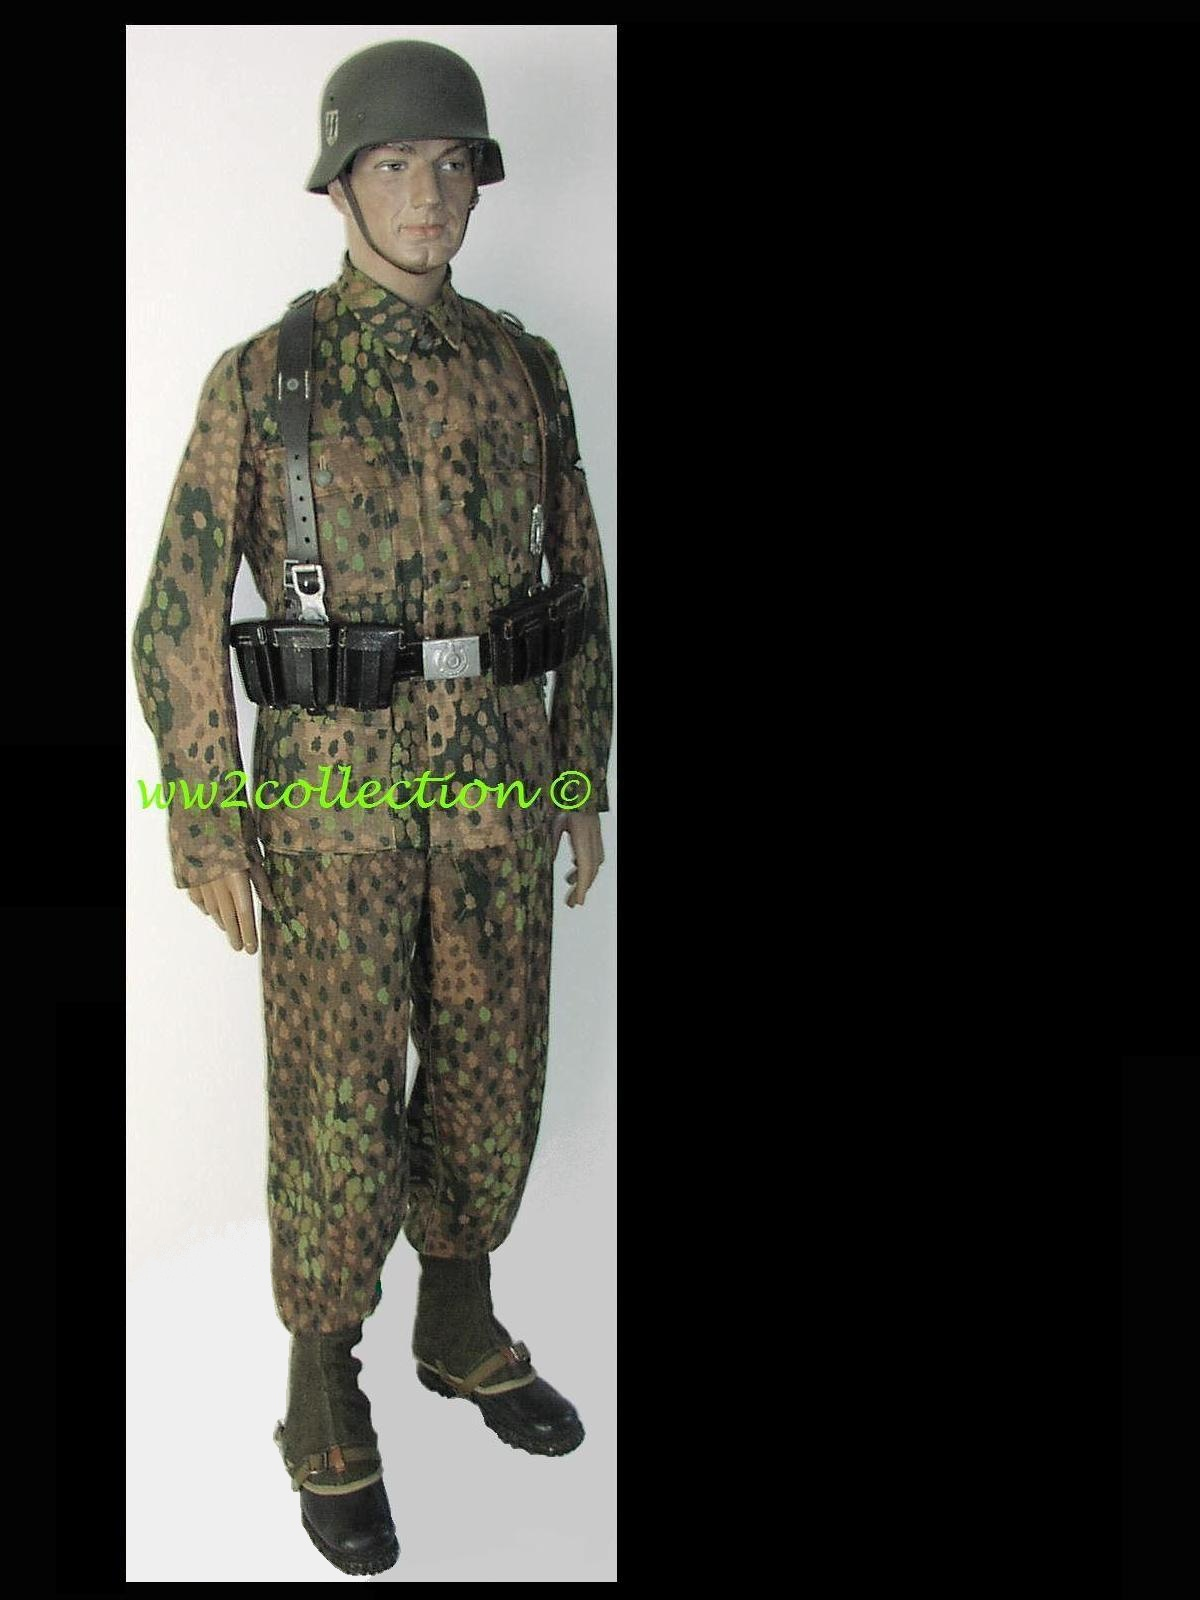 Waffen-SS uniform, Normandy 1944, Battle of the Bulge